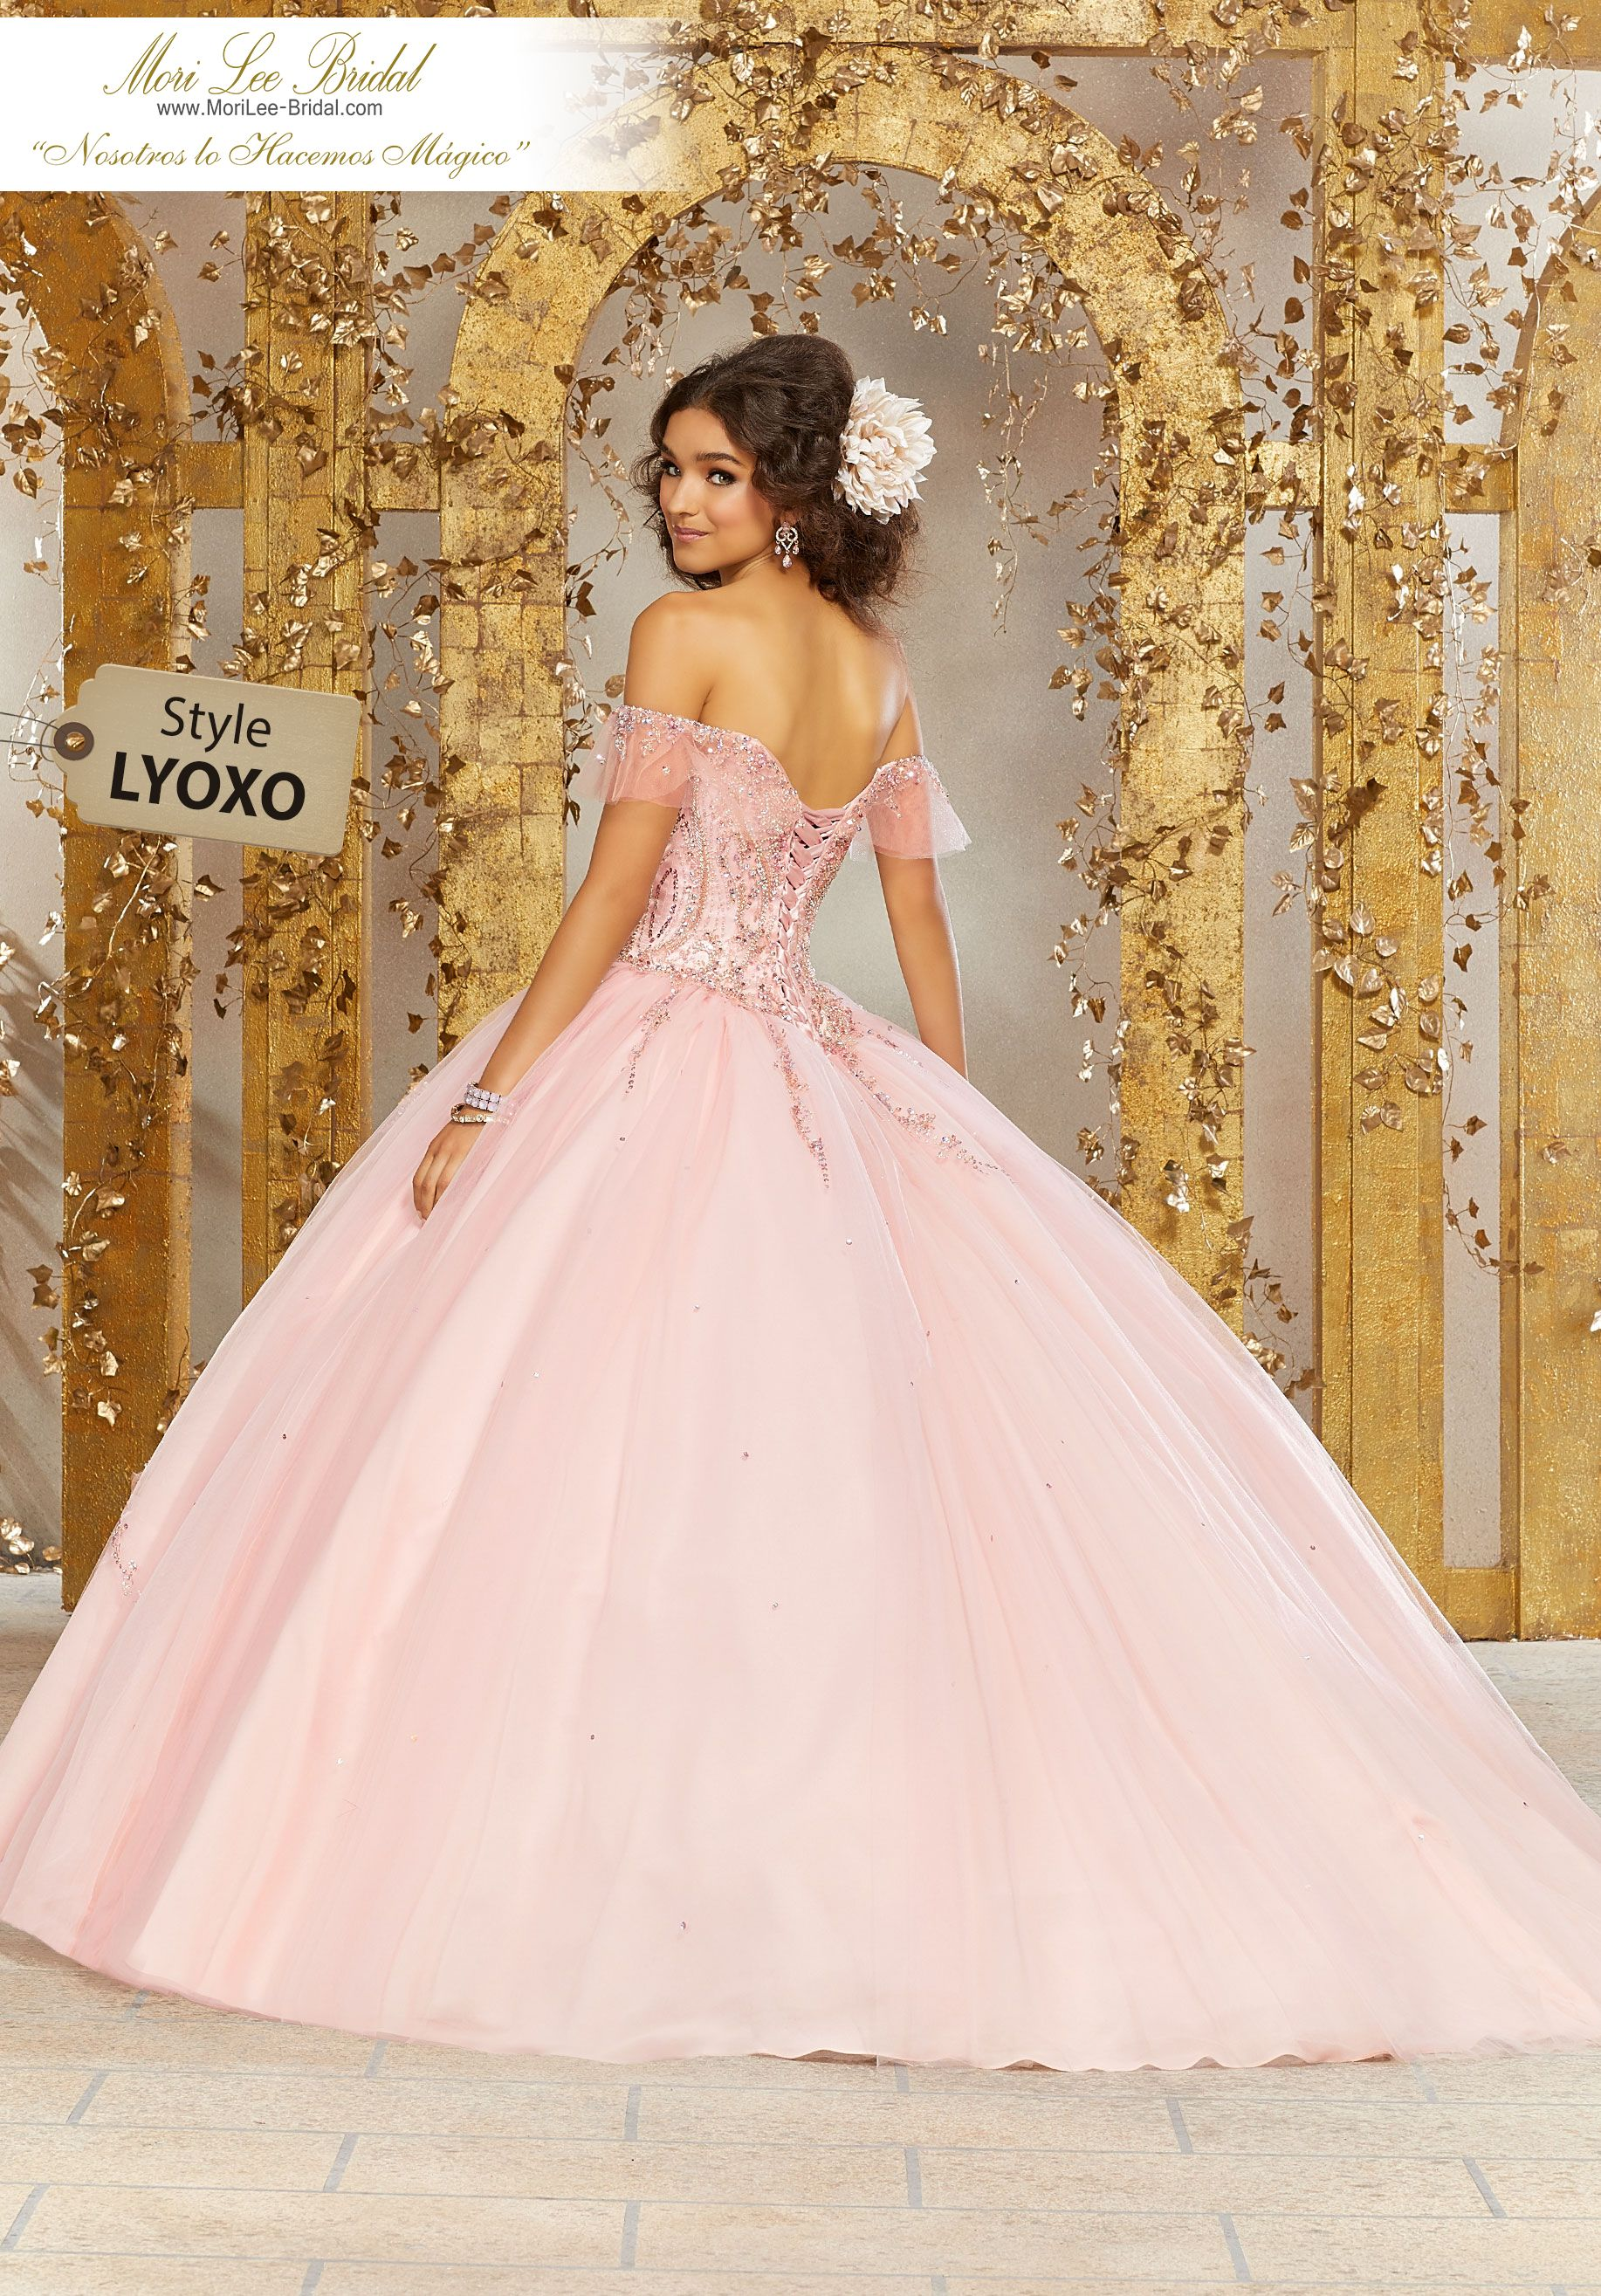 3f7b4154b Crystal Beading on a Tulle Ballgown Tulle Quinceañera Dress Featuring a  Gorgeous Sweetheart Beaded Bodice and